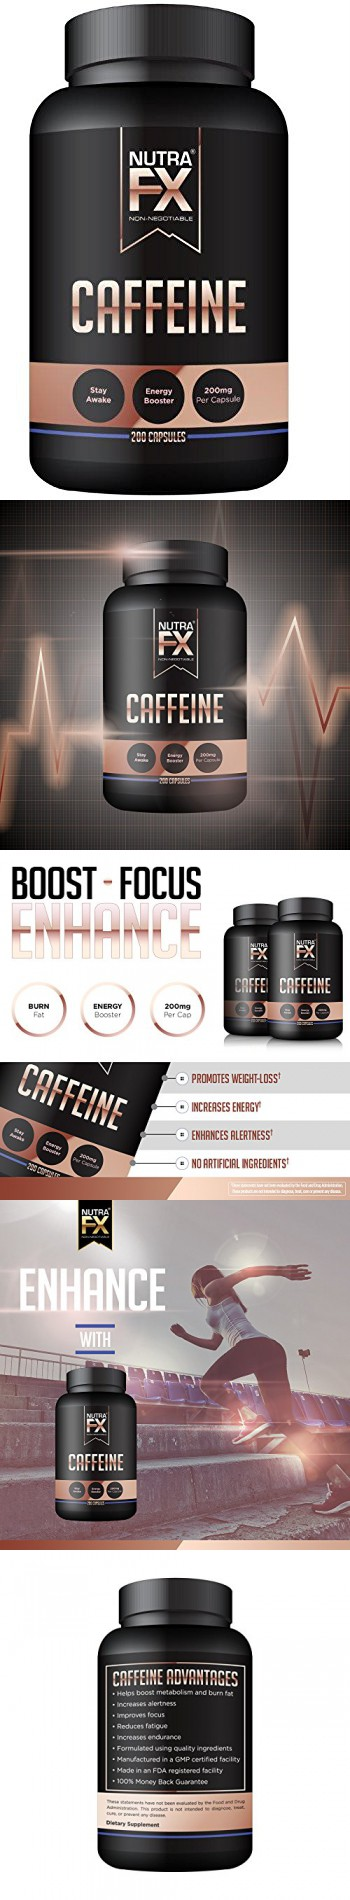 NutraFX Caffeine Pills 200mg Natural Energy and Focus Stimulant - stay awake